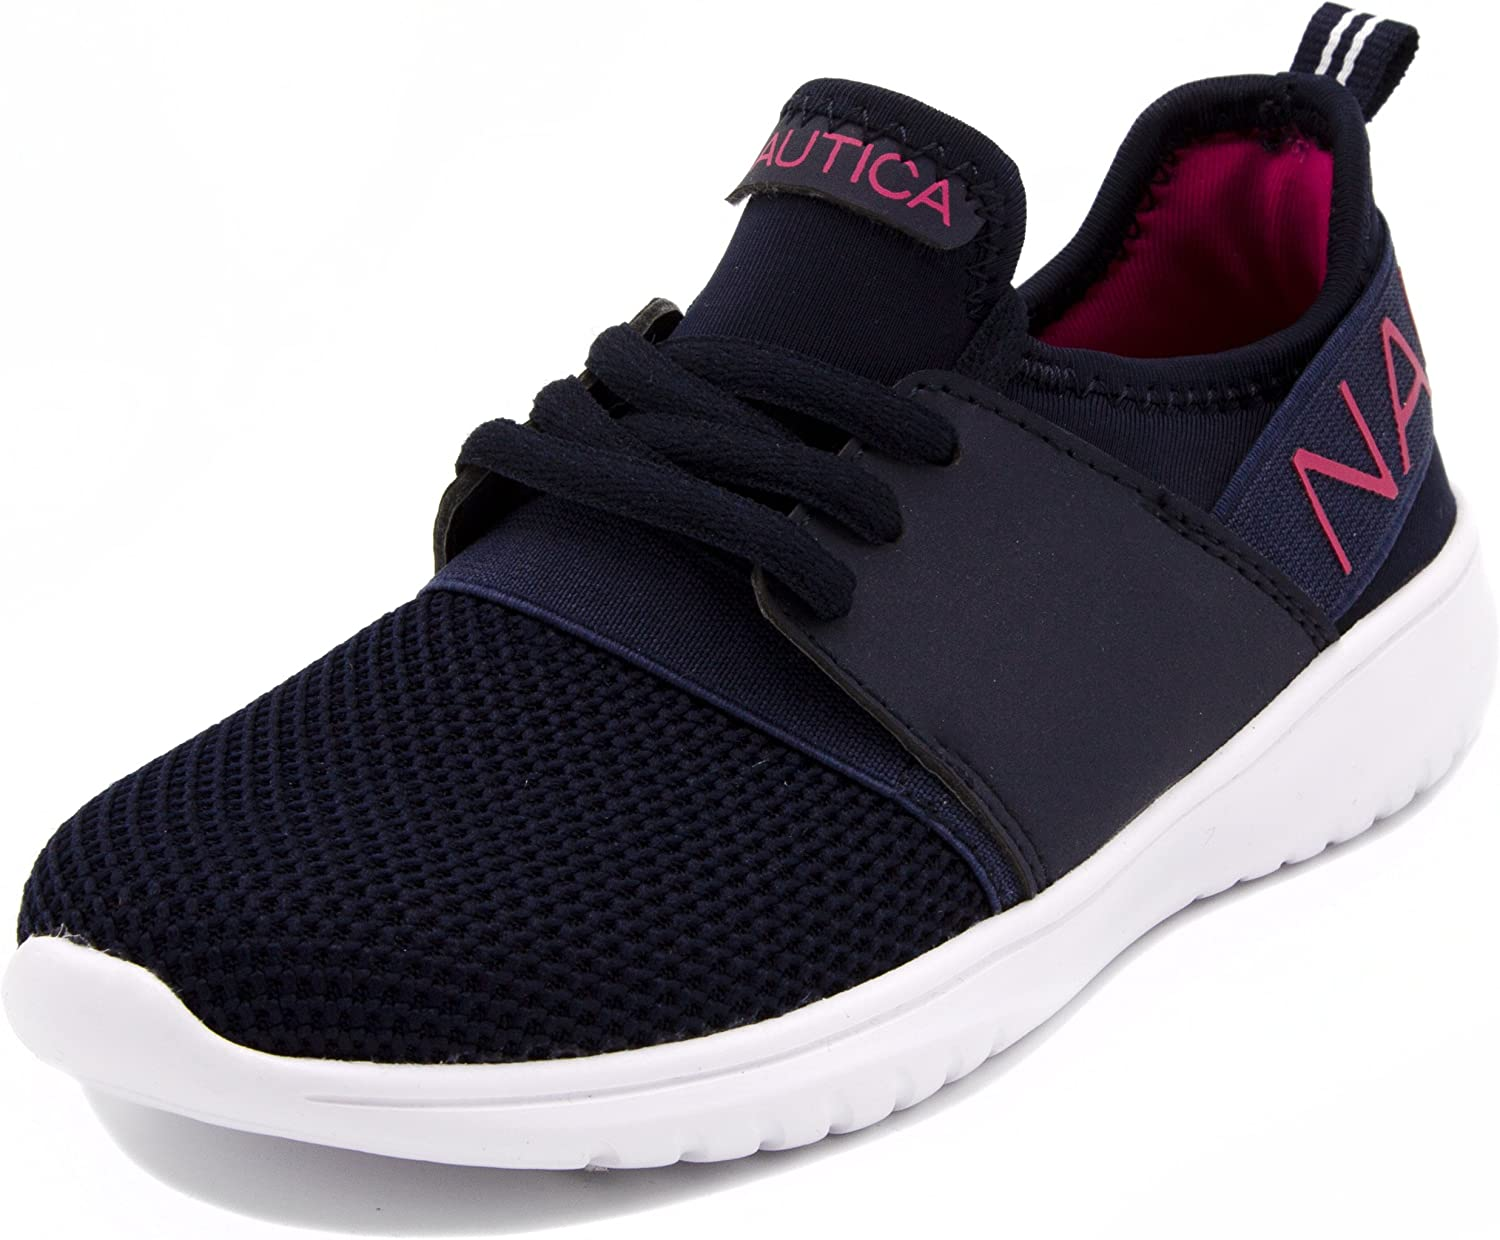 Nautica Kids Youth Sneaker Comfortable Athletic Running Shoes|Boys-Girls|-Kaiden/Kappil